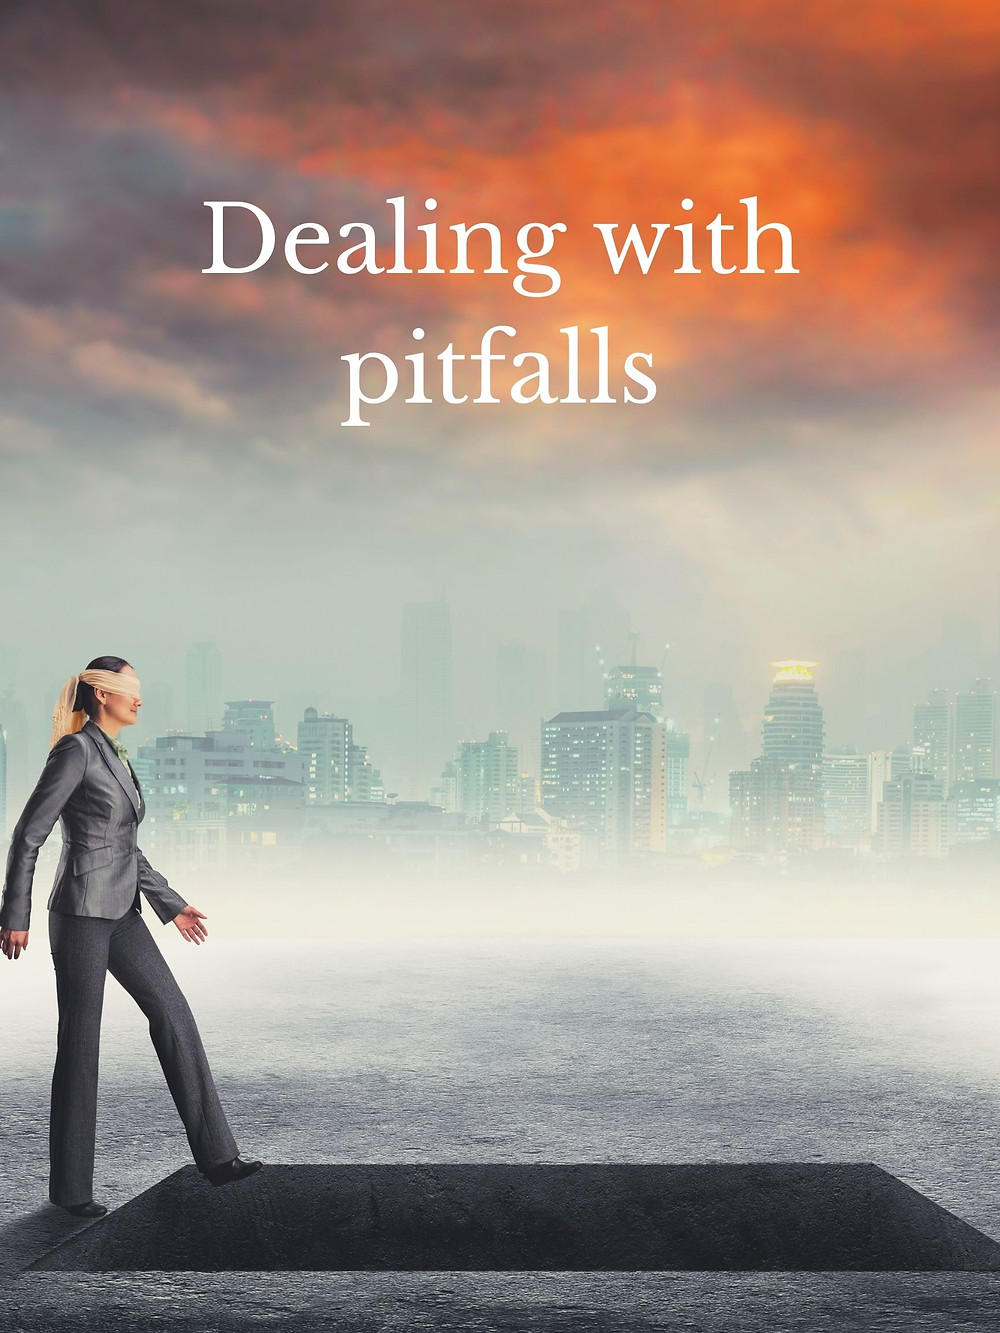 Dealing with pitfalls